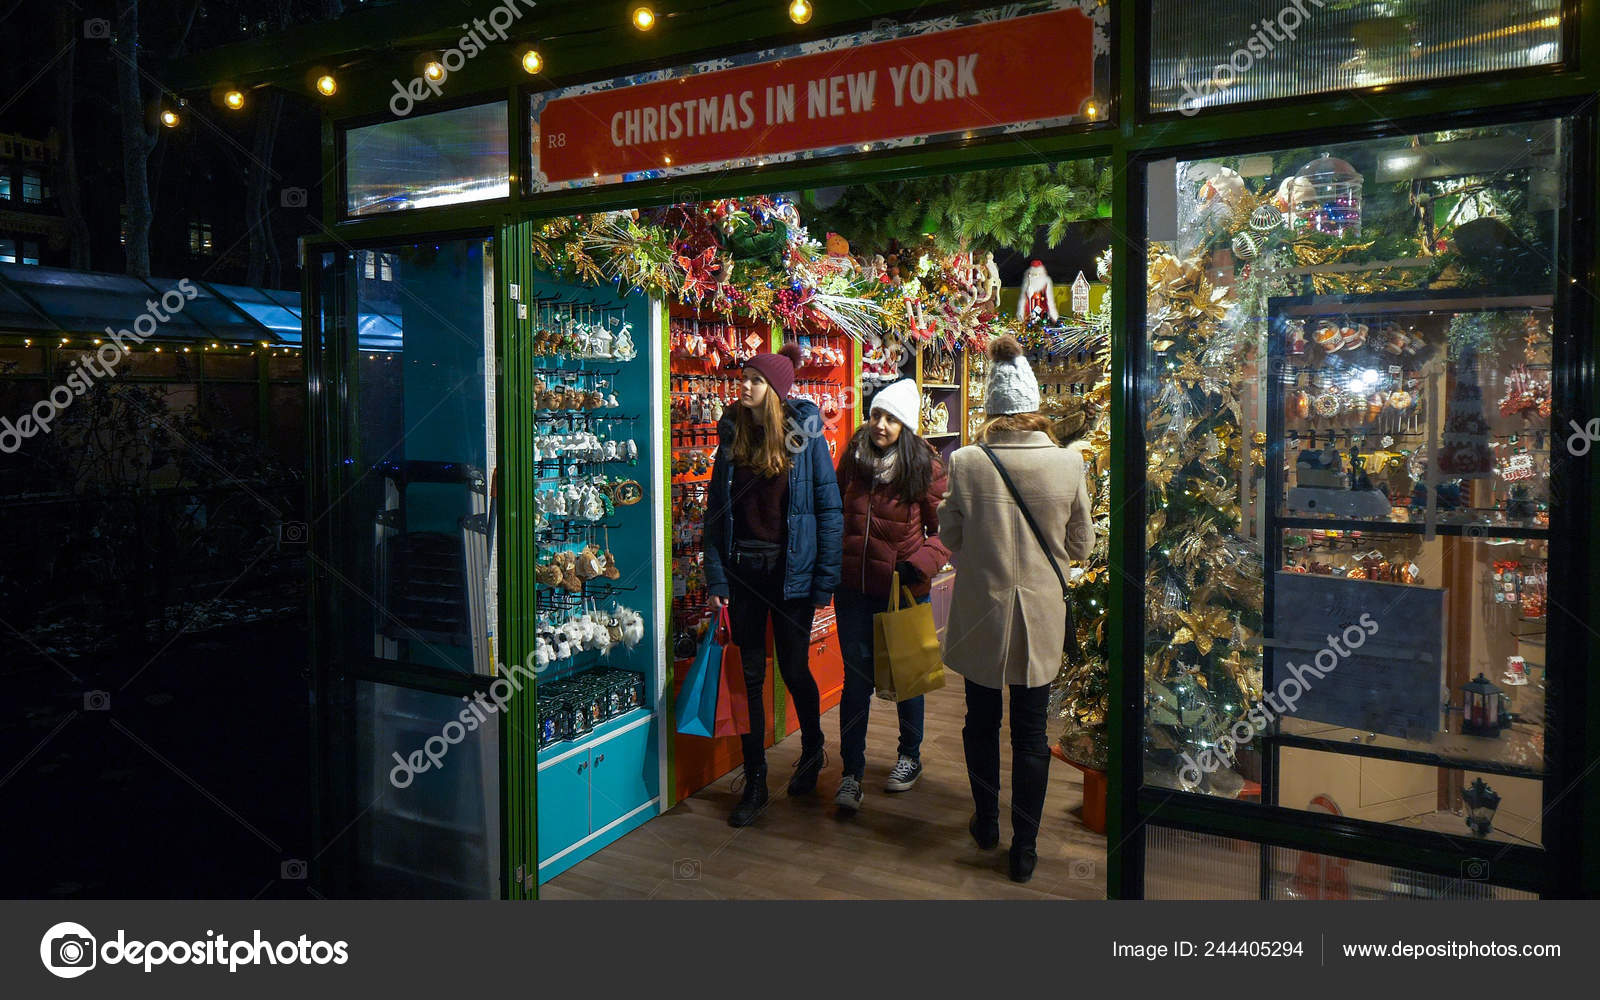 Bryant Park Christmas Market.Christkindles Market At Bryant Park Manhattan Christmas In